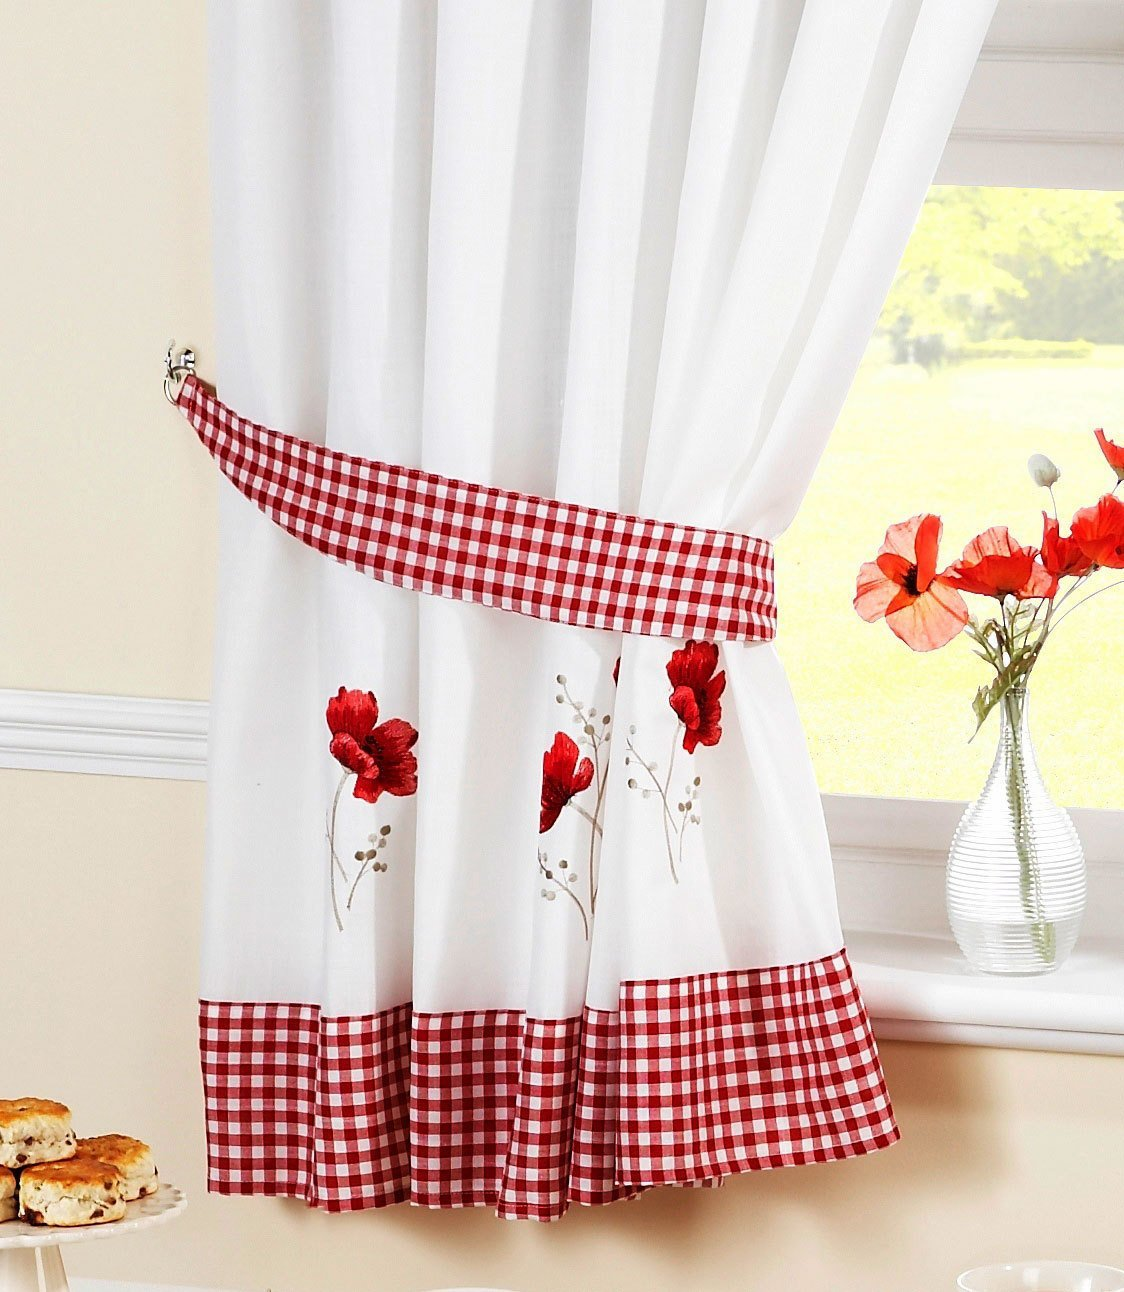 Crewel Curtain Fabric | Pom Pom Drapes | Embroidered Curtains